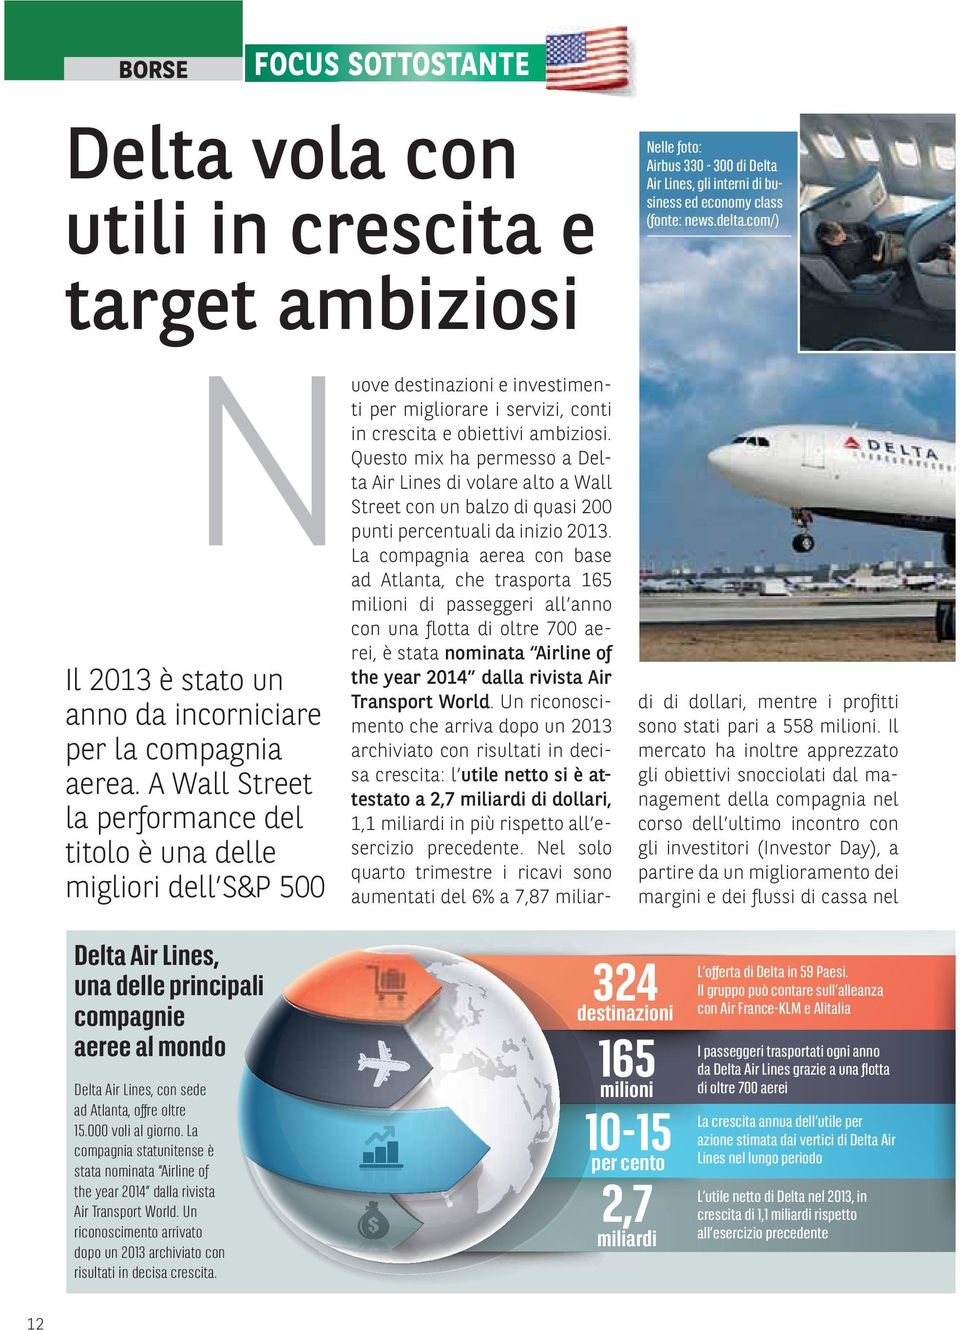 000 voli al giorno. La compagnia statunitense è stata nominata Airline of the year 2014 dalla rivista Air Transport World.